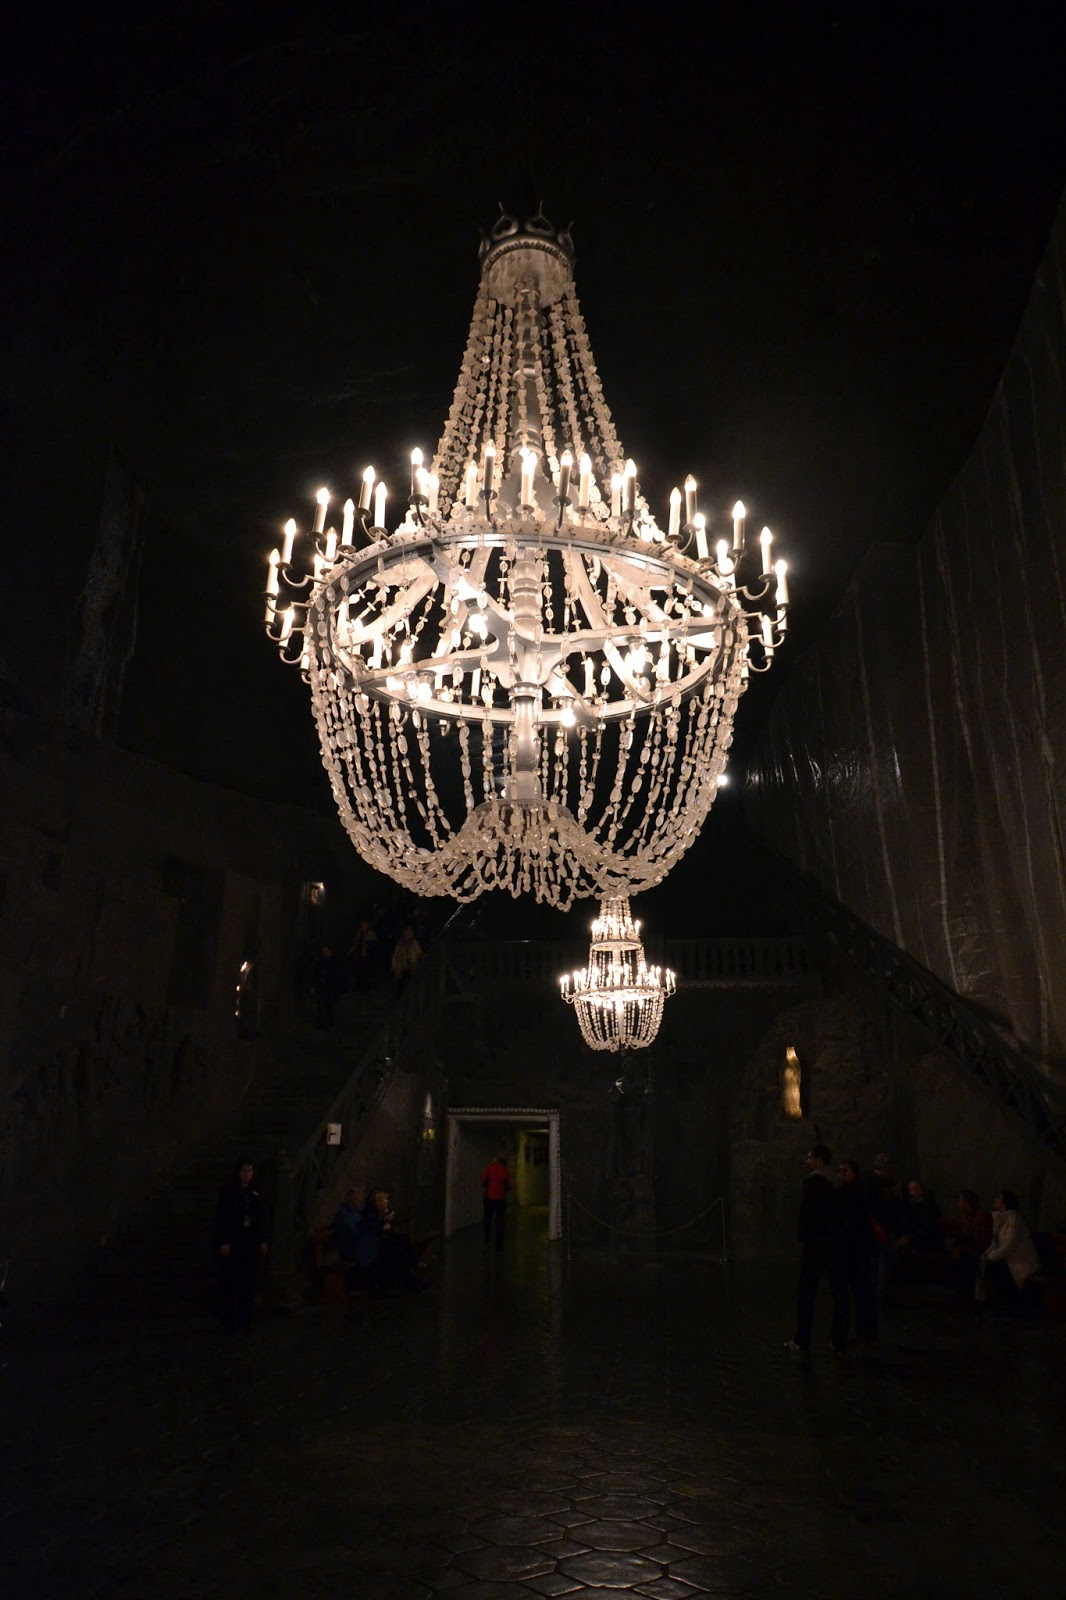 Wieliczka Salt Mine, Krakow, Poland, tours, guides, how to get to Wieliczka Salt Mine from Krakow, Prices, Opening hours, Michalowice Chamber, Jozef Pilsudski grotto, statue of St. John Nepomuk, saline lakes, Weimar chamber, Da Vinci's last supper salt, Chapel of the Blessed Kinga,